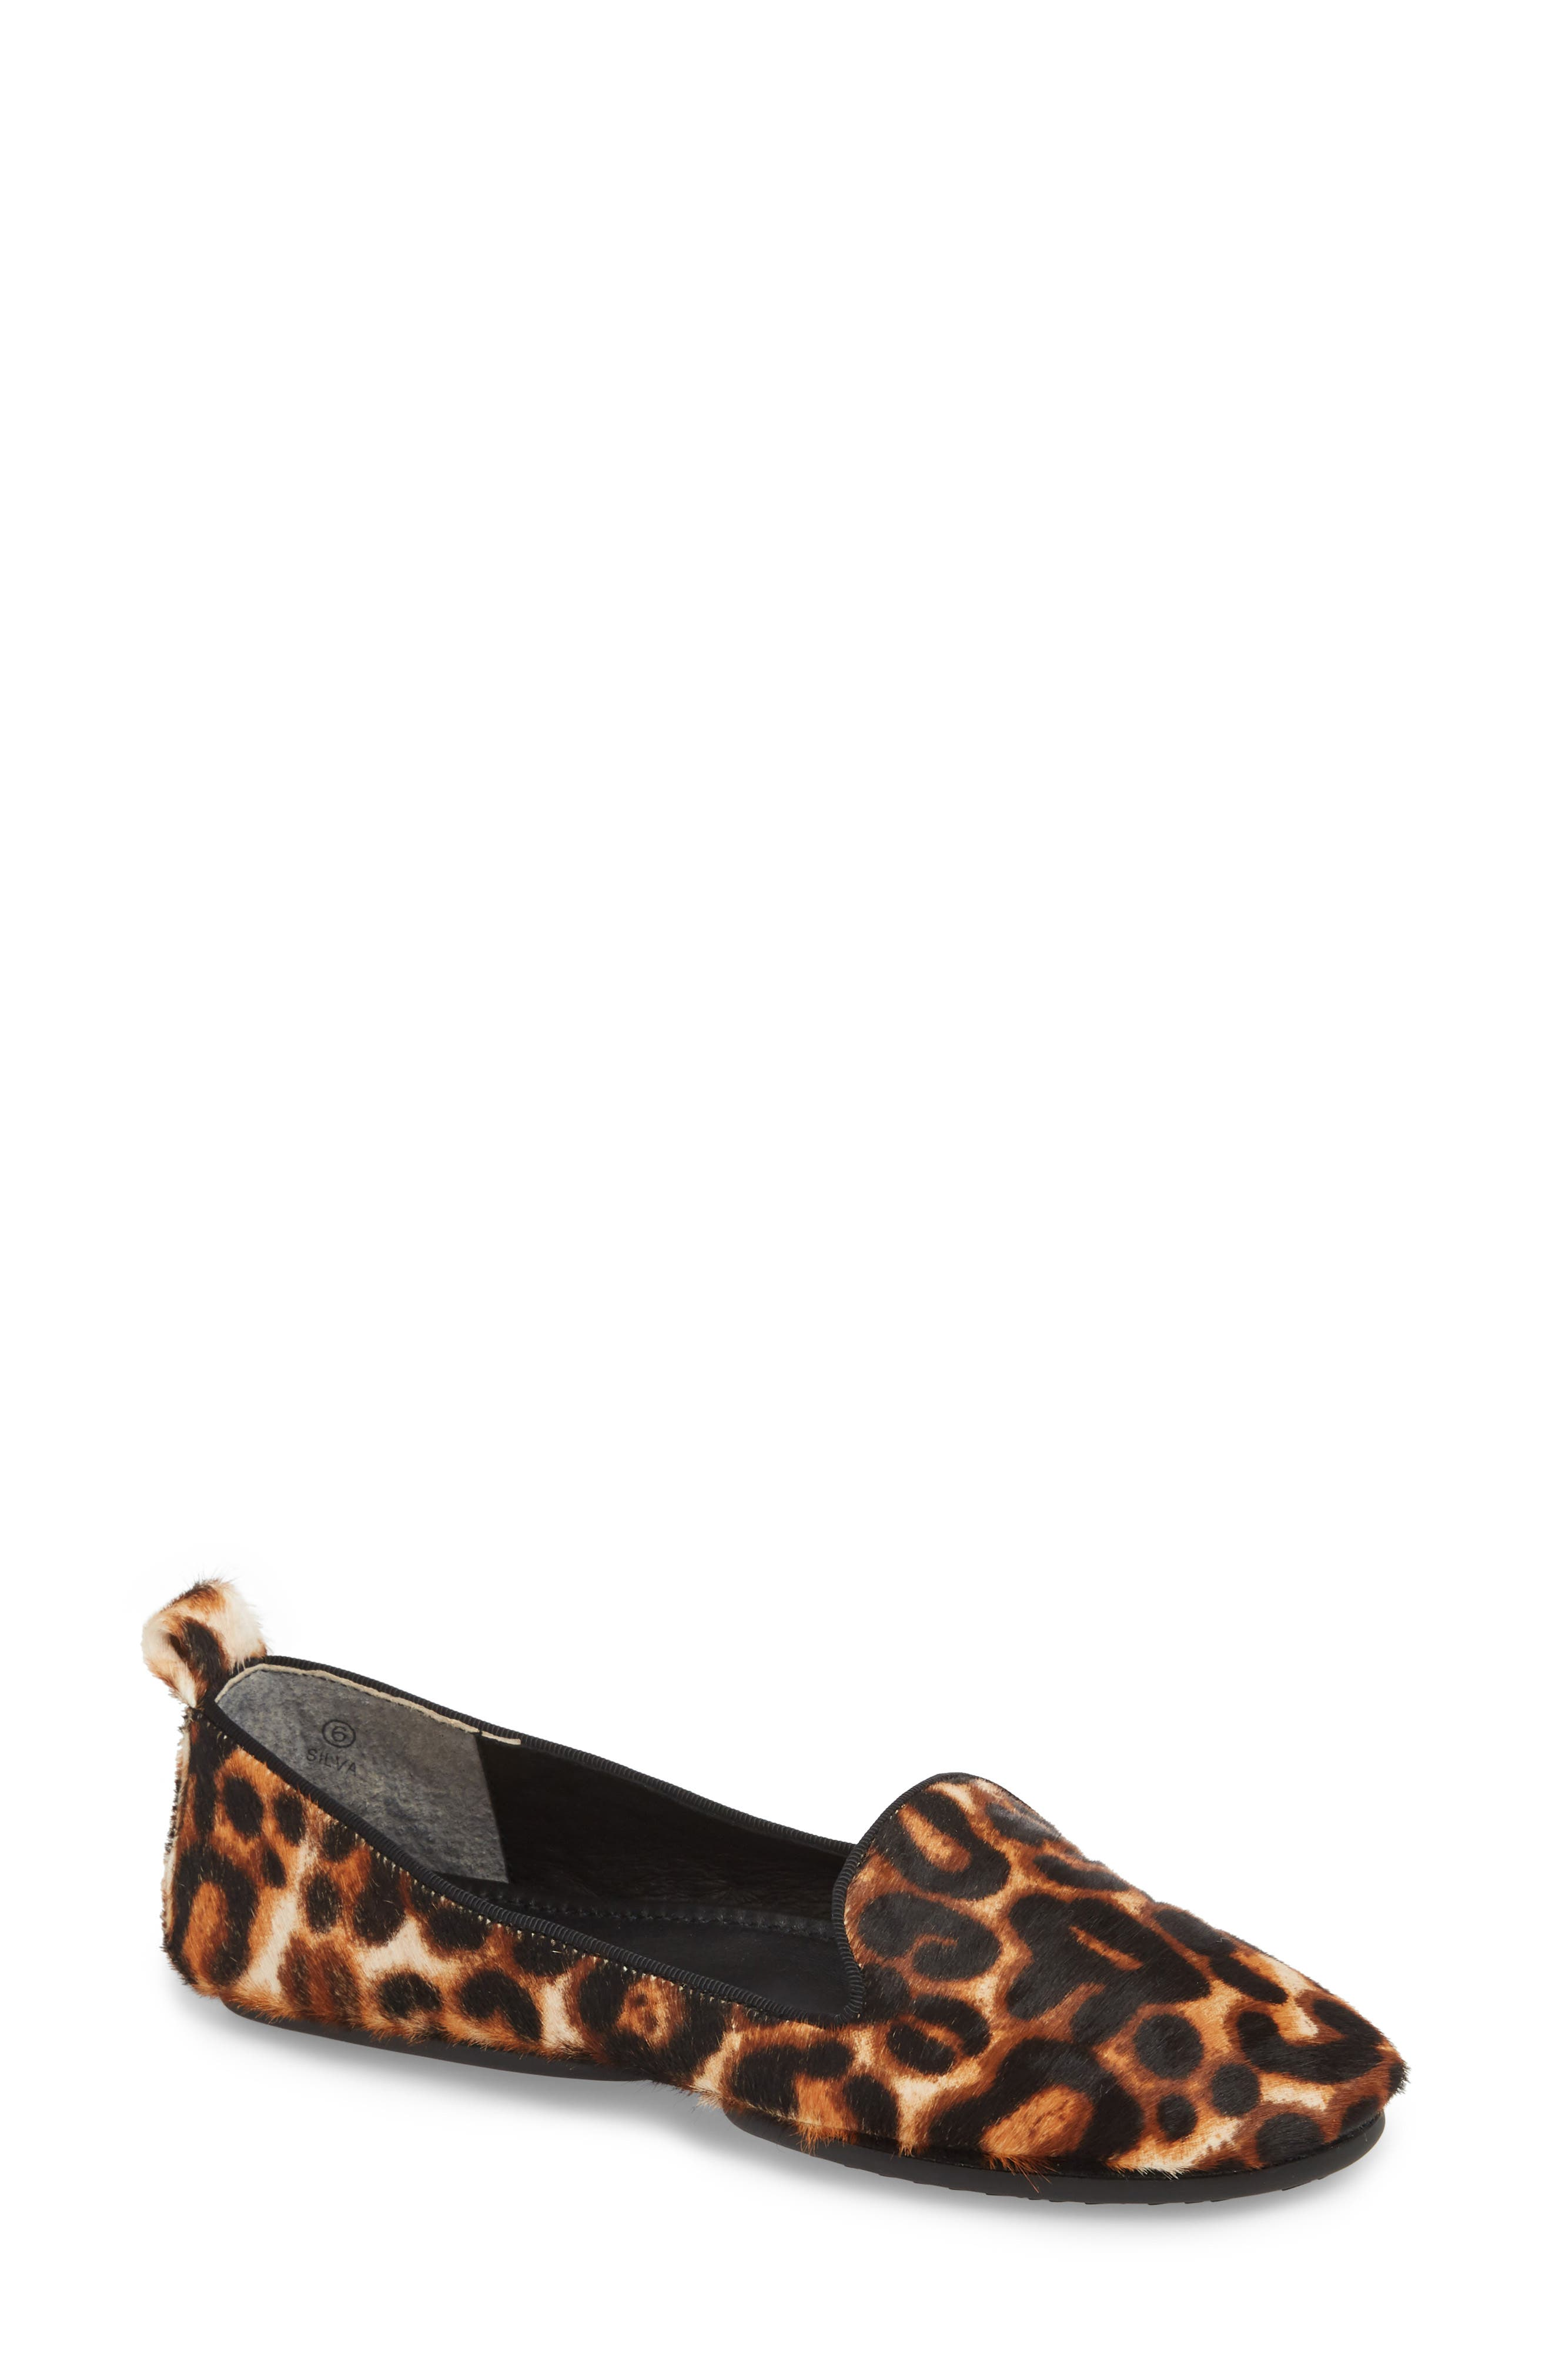 Silva Genuine Calf Hair Loafer,                         Main,                         color, Natural Leopard Calf Hair